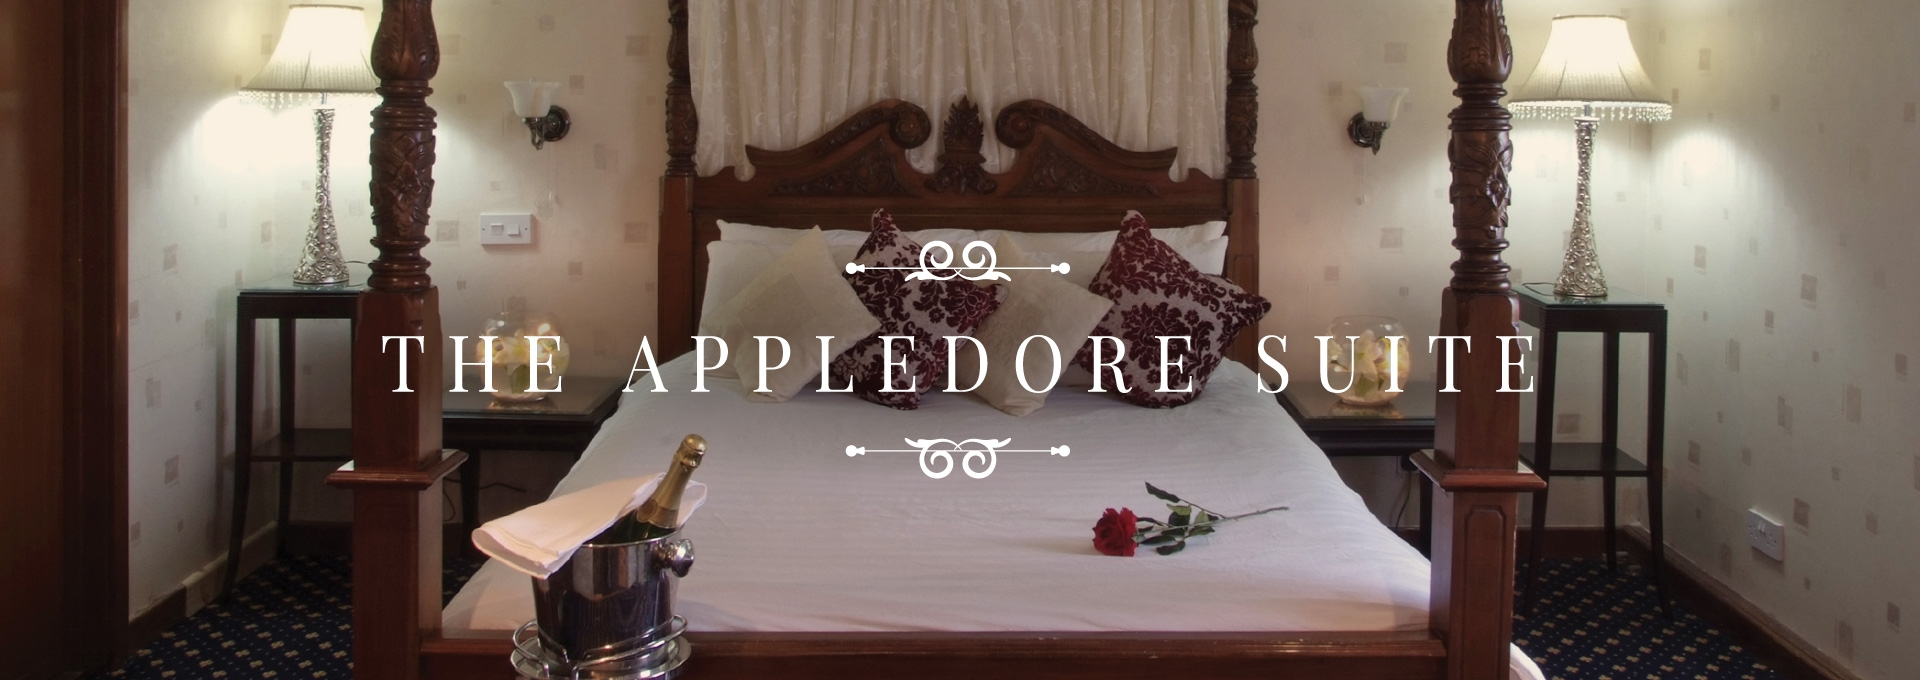 The Appledore Suite at the Durrant House Hotel - Luxurious and Romantic Holidays in North Devon